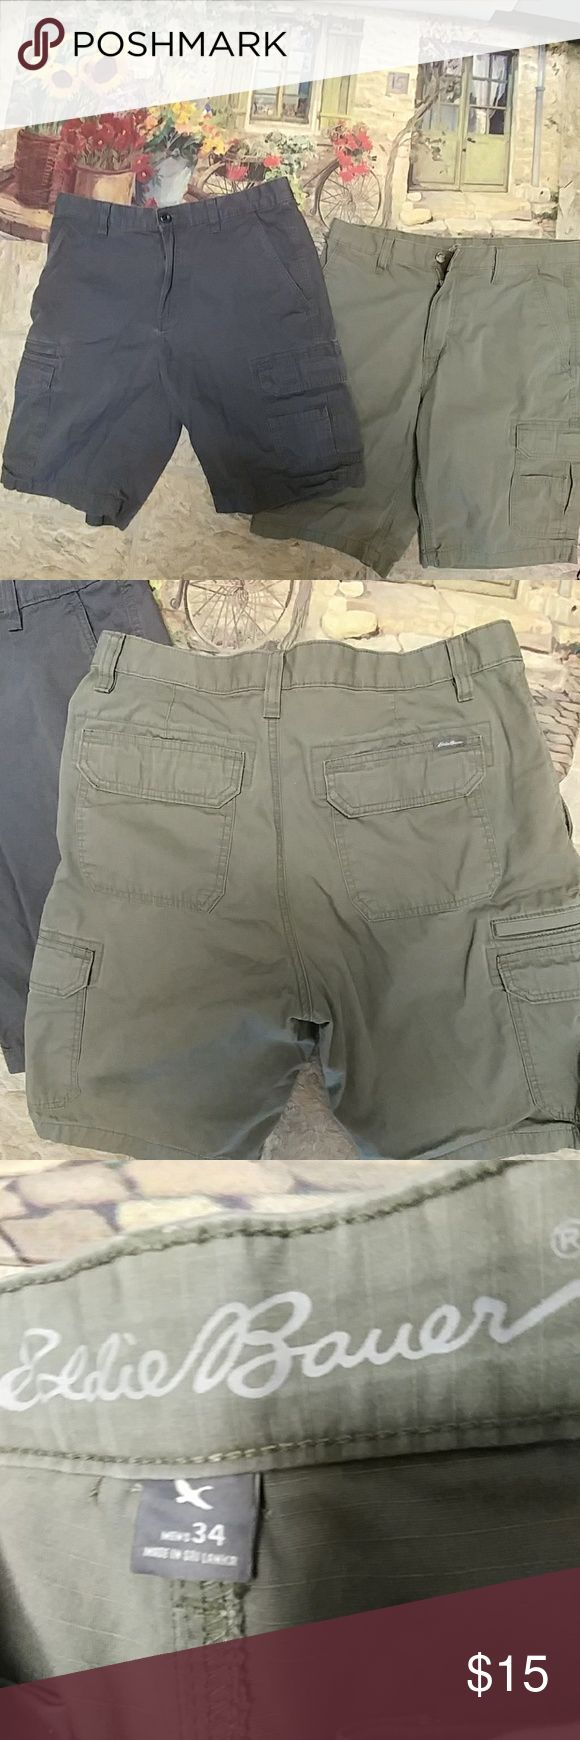 Pair great green Eddie Bauer men's cargo shorts 34 34 waist Side Pockets at waist velcro pockets down towards bottom and they Velcro and then there is a smaller pocket off of one of those packets.  Double pockets in the back of the shorts that velcro open and close these are button at the waist and ZIP down shorts with belt loops they are size 34 waist and also new without tags great deal for the right guy! One short is khaki green the other is gray. Eddie Bauer Shorts Cargo